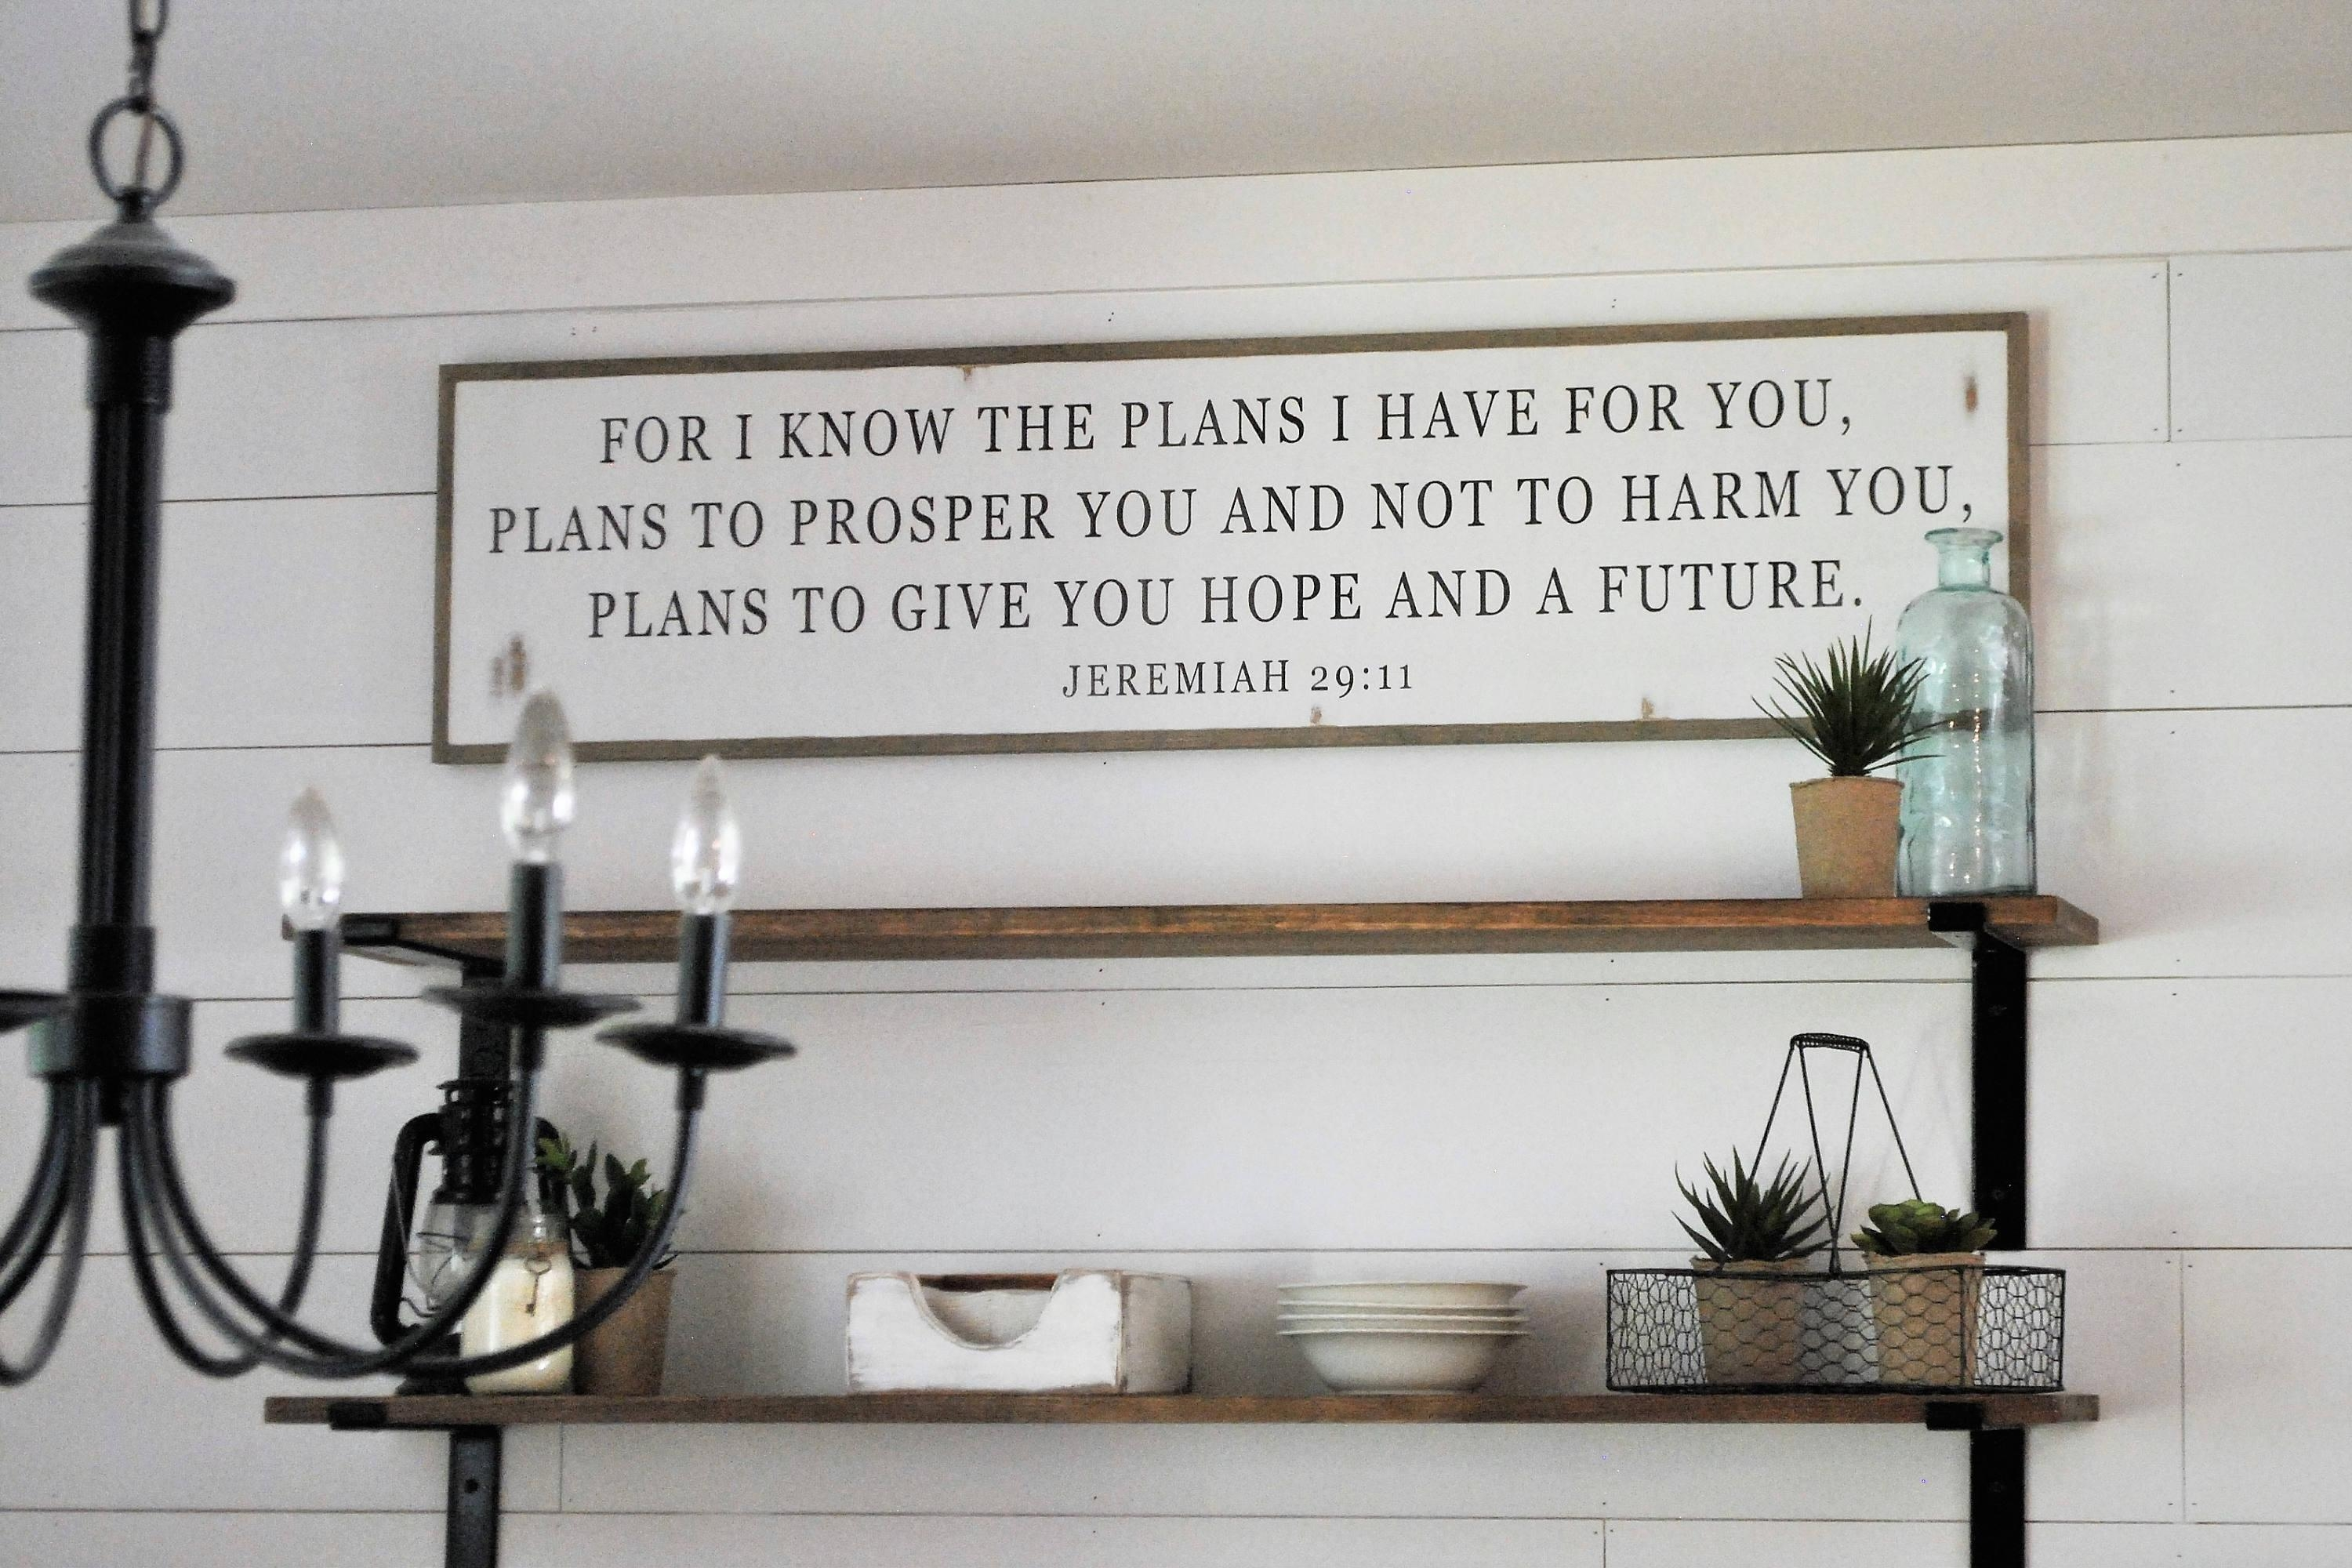 I Know The Plans I Have For You 1'x4' Sign | Distressed Shabby Inside Jeremiah 29 11 Wall Art (View 11 of 20)